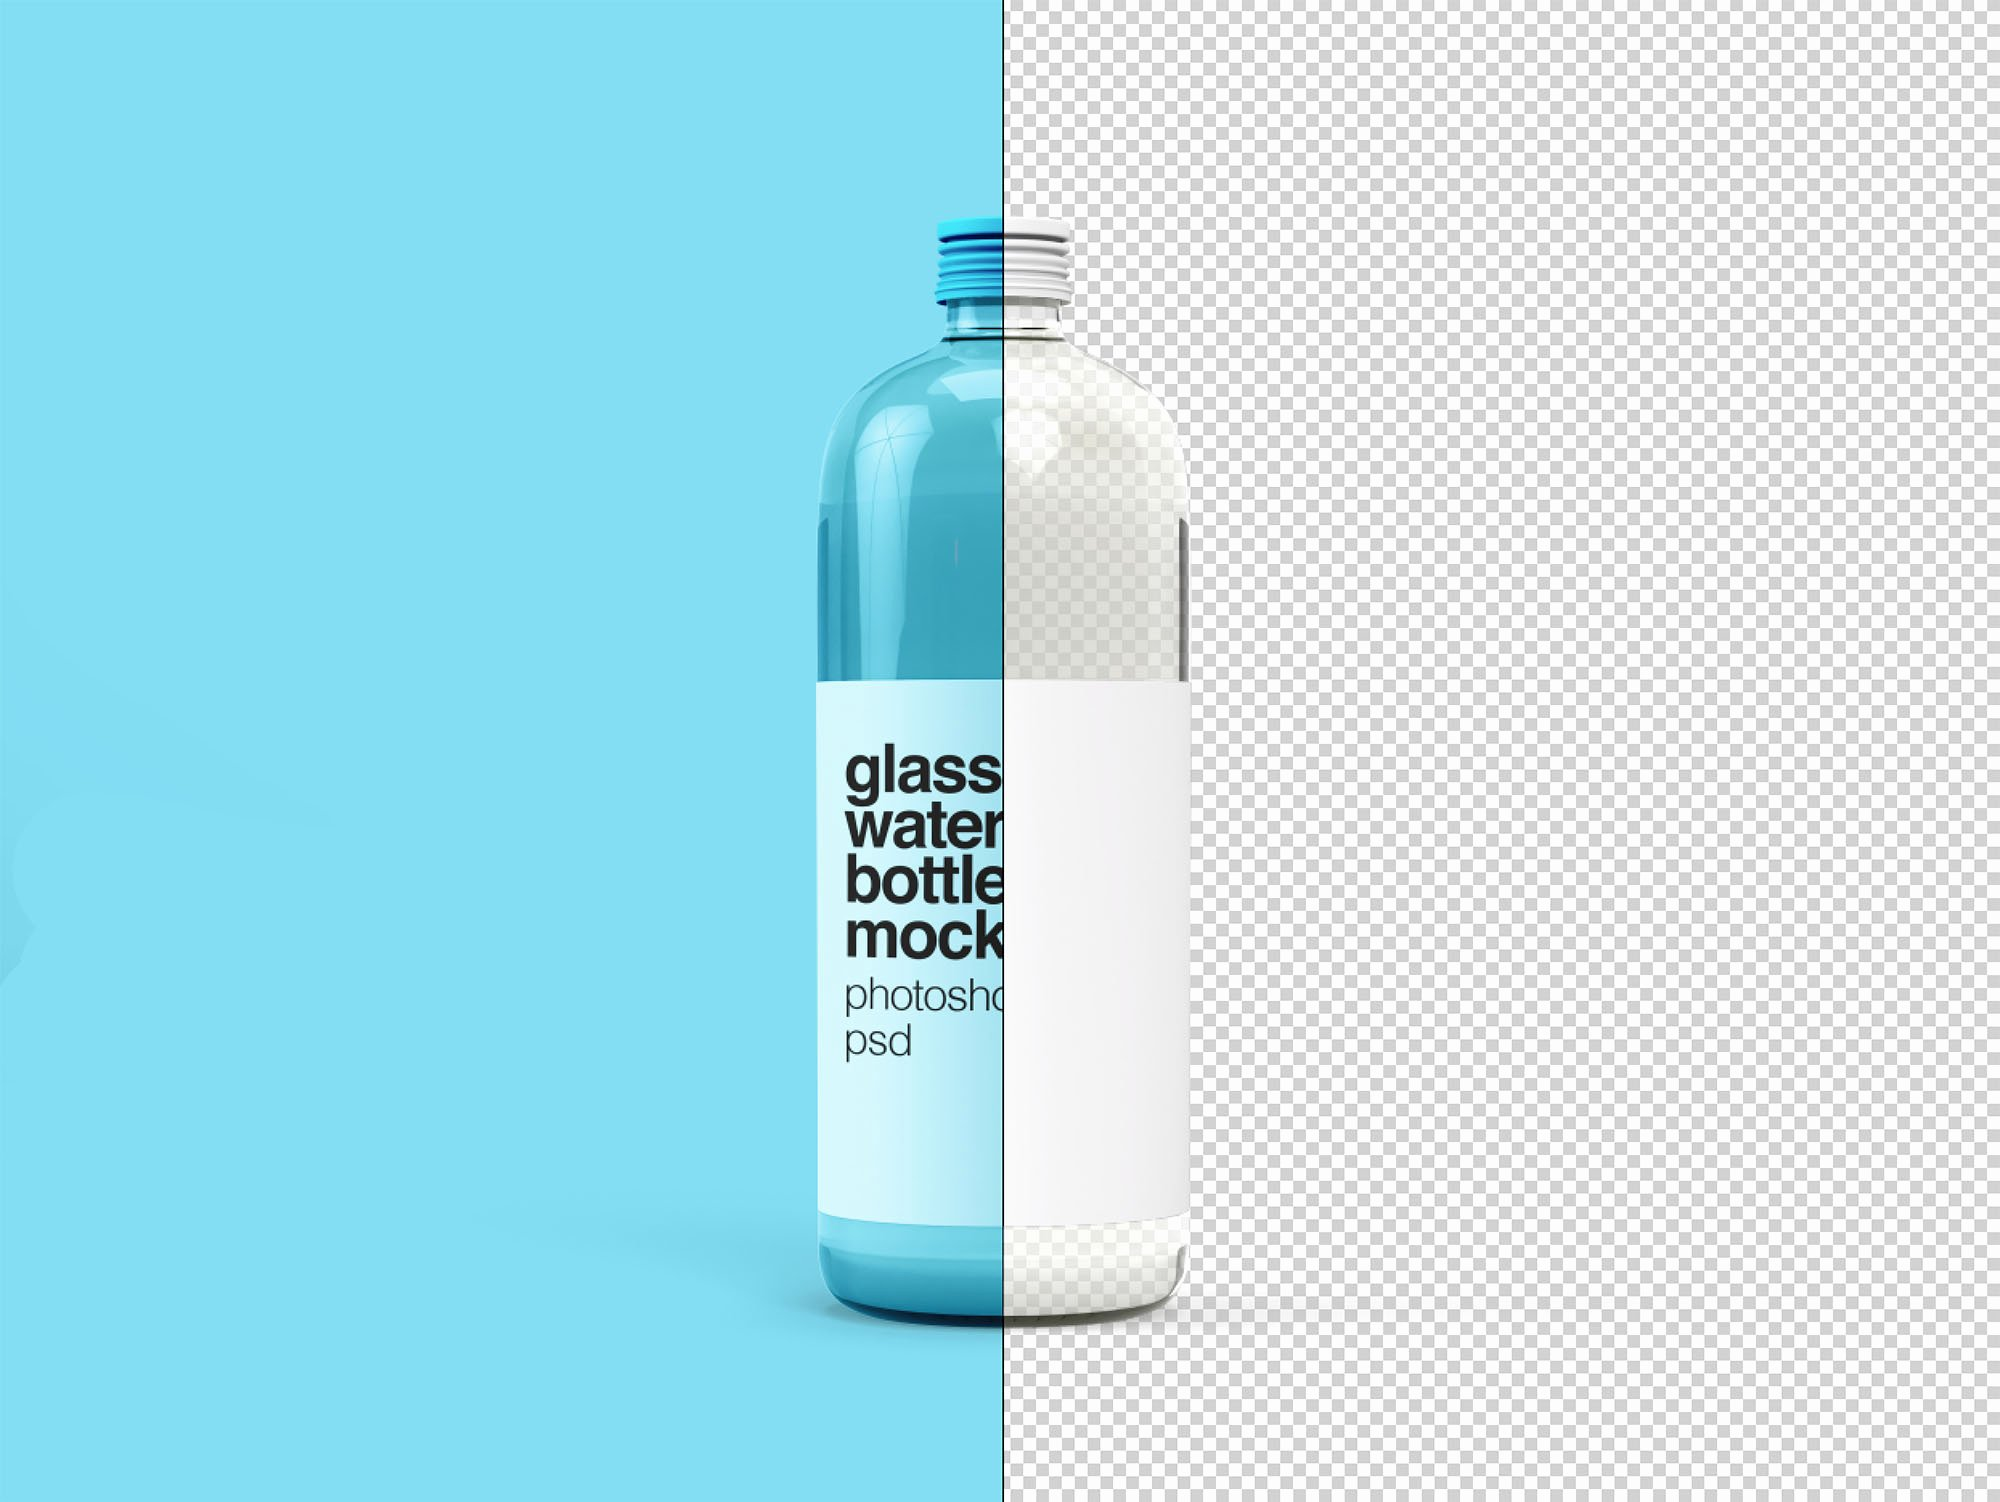 Water Bottle Mock Up Elegant Glass Water Bottle Mockup